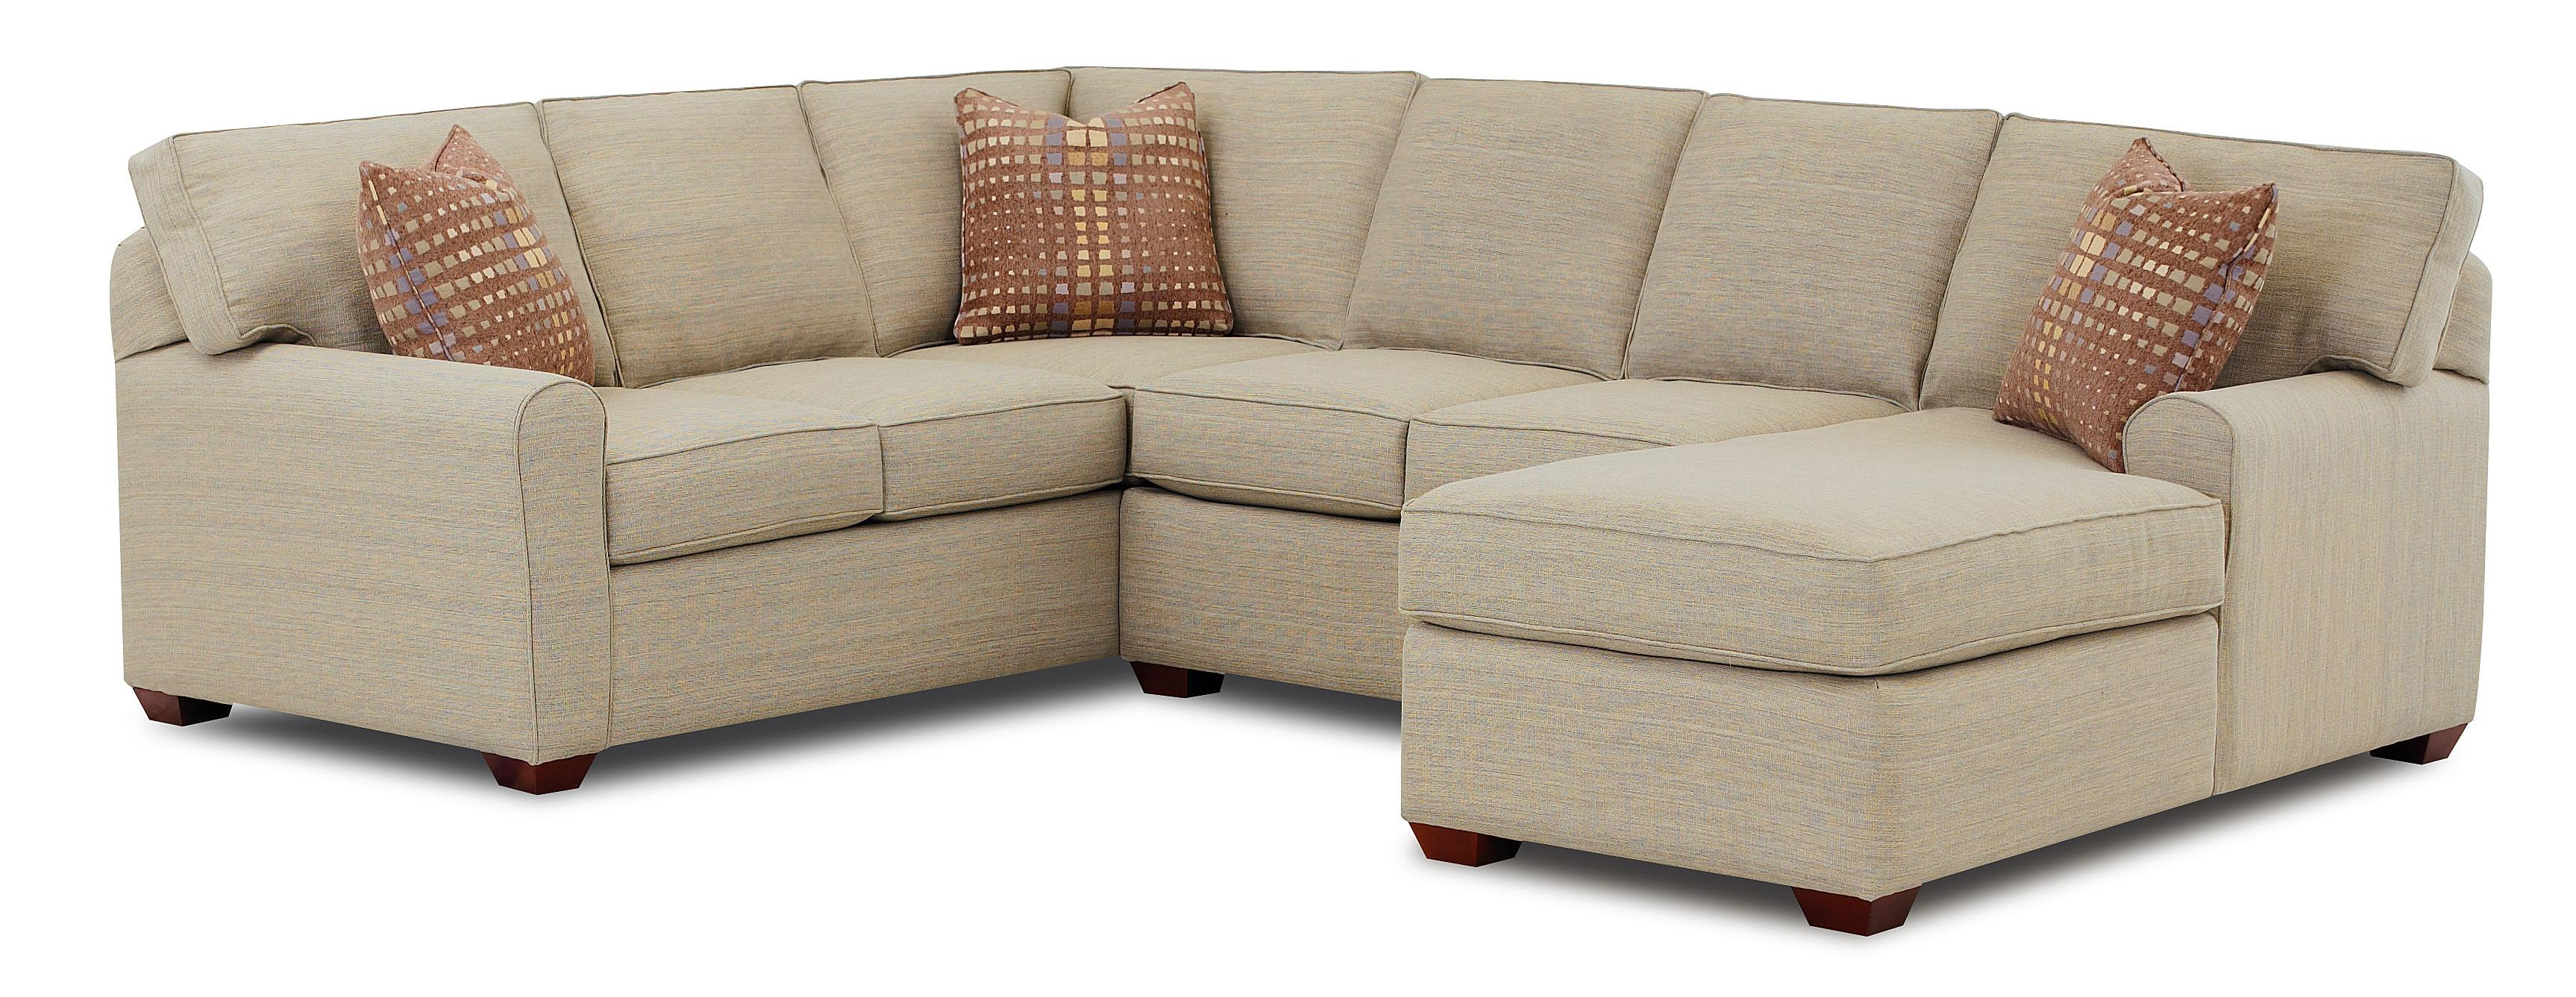 Sectional sofa with right facing chaise lounge by for Sectional sofa bed with chaise lounge